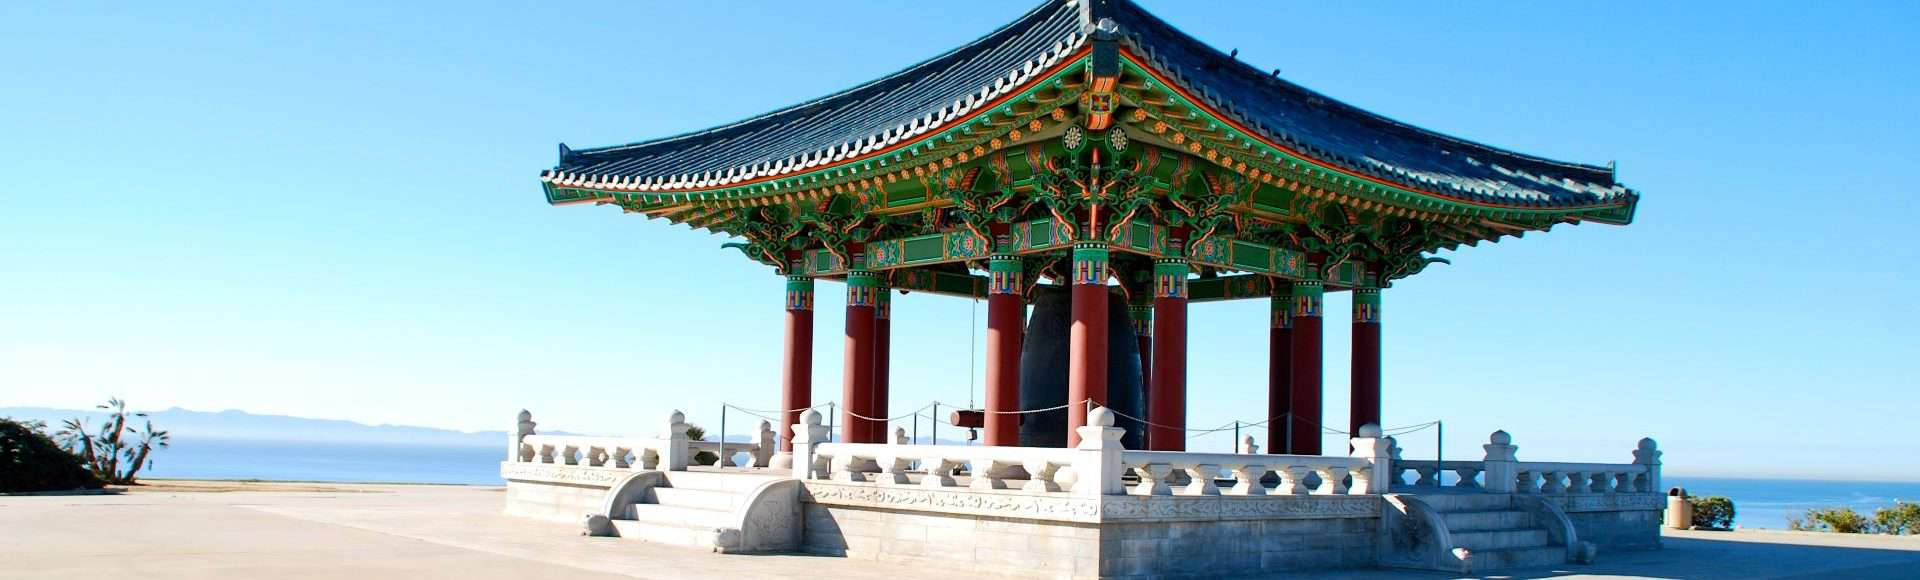 Korean Bell 1 copy